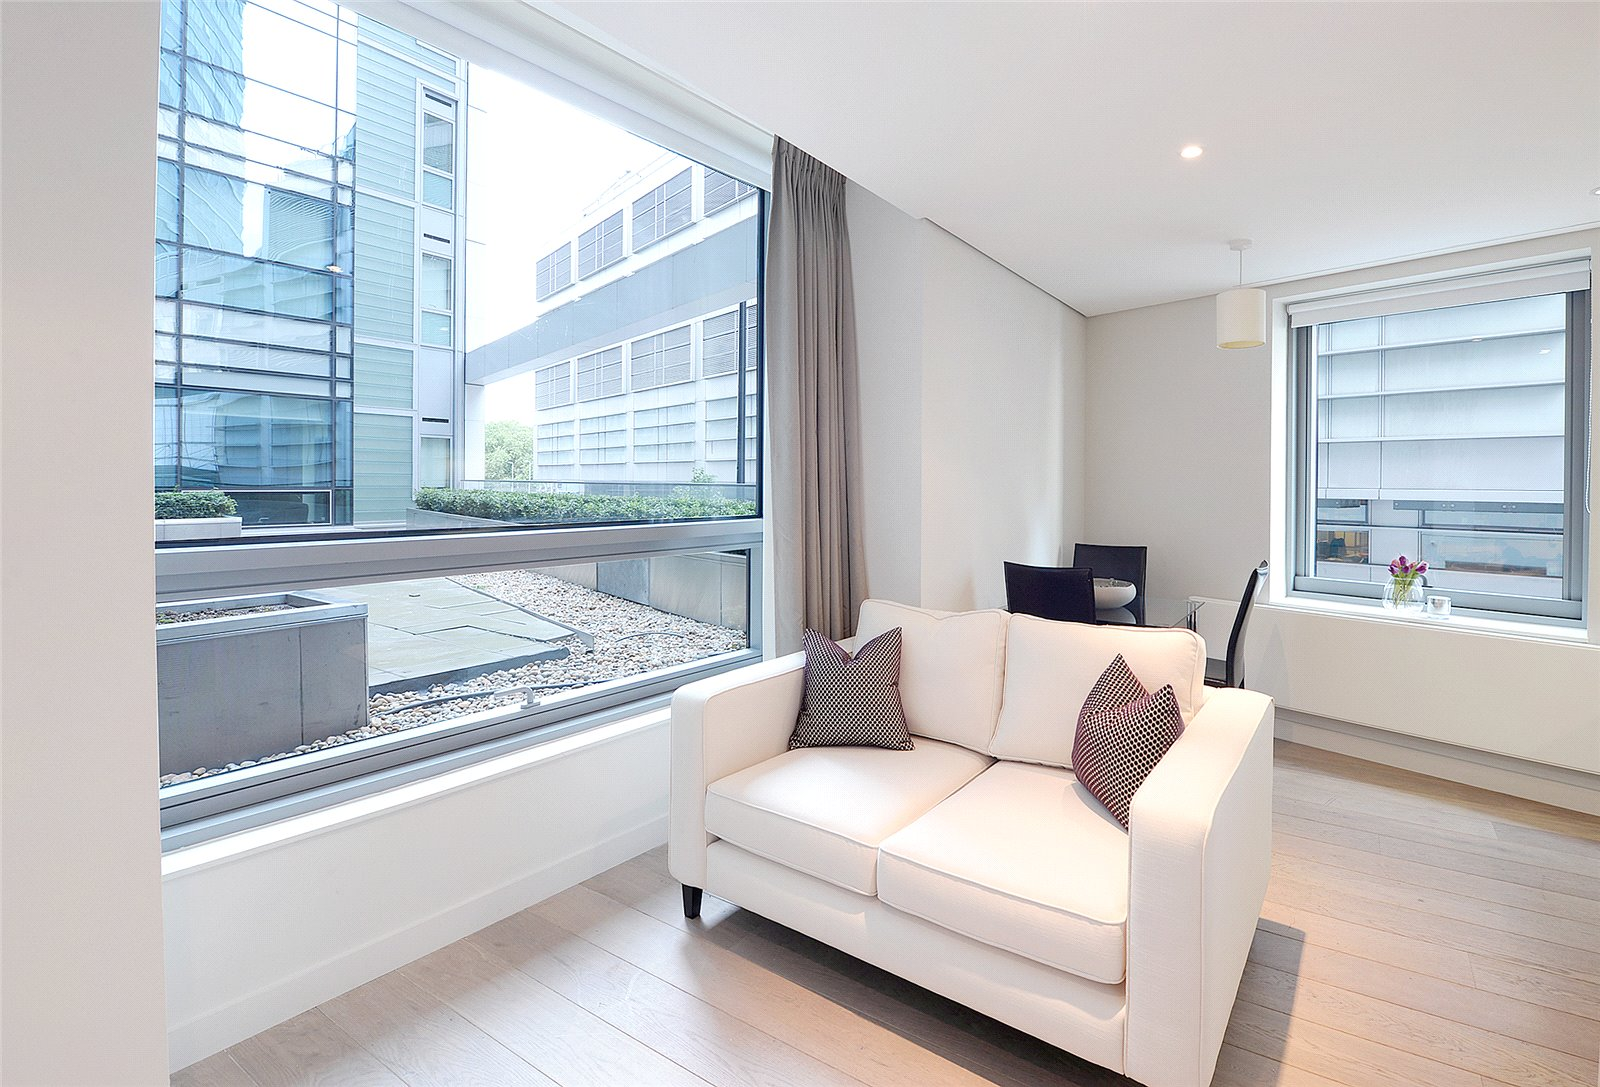 Apartment for Rent at Merchant Square, Paddington, London, W2 Merchant Square, Paddington, London, W2